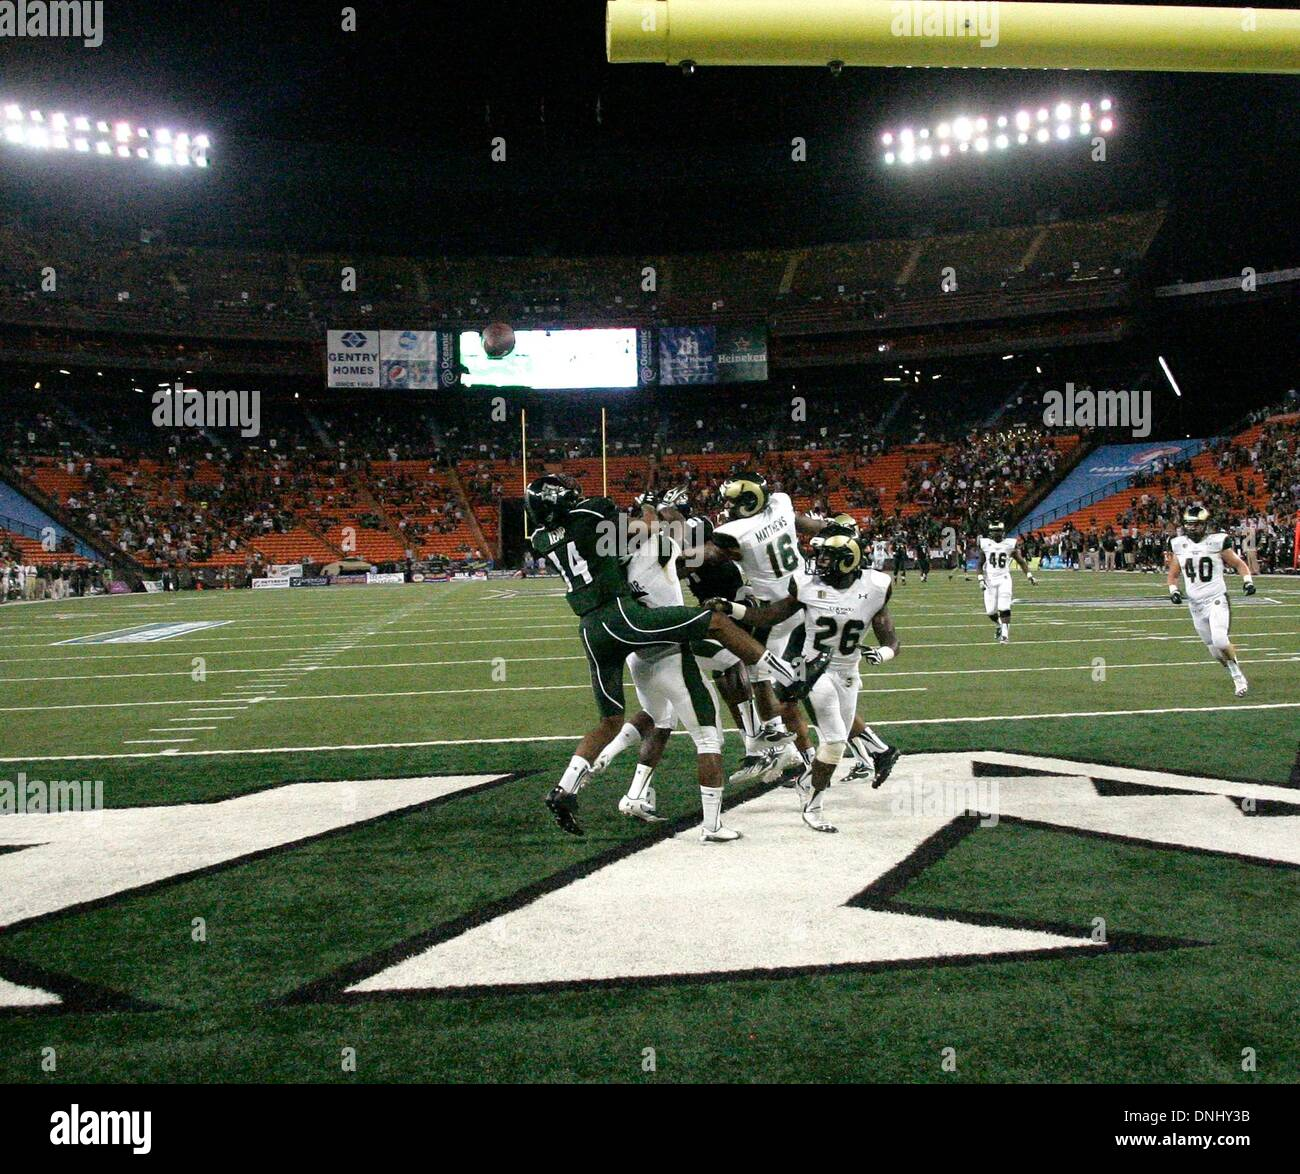 Honolulu, HI, USA. 26th Oct, 2013. October 26, 2013 - Hawaii's last gasp pass falls harmlessly away sealing the victory for Colorado State during action between the Colorado State Rams and Hawaii Rainbow Warriors at Aloha Stadium in Honolulu, HI. © csm/Alamy Live News - Stock Image